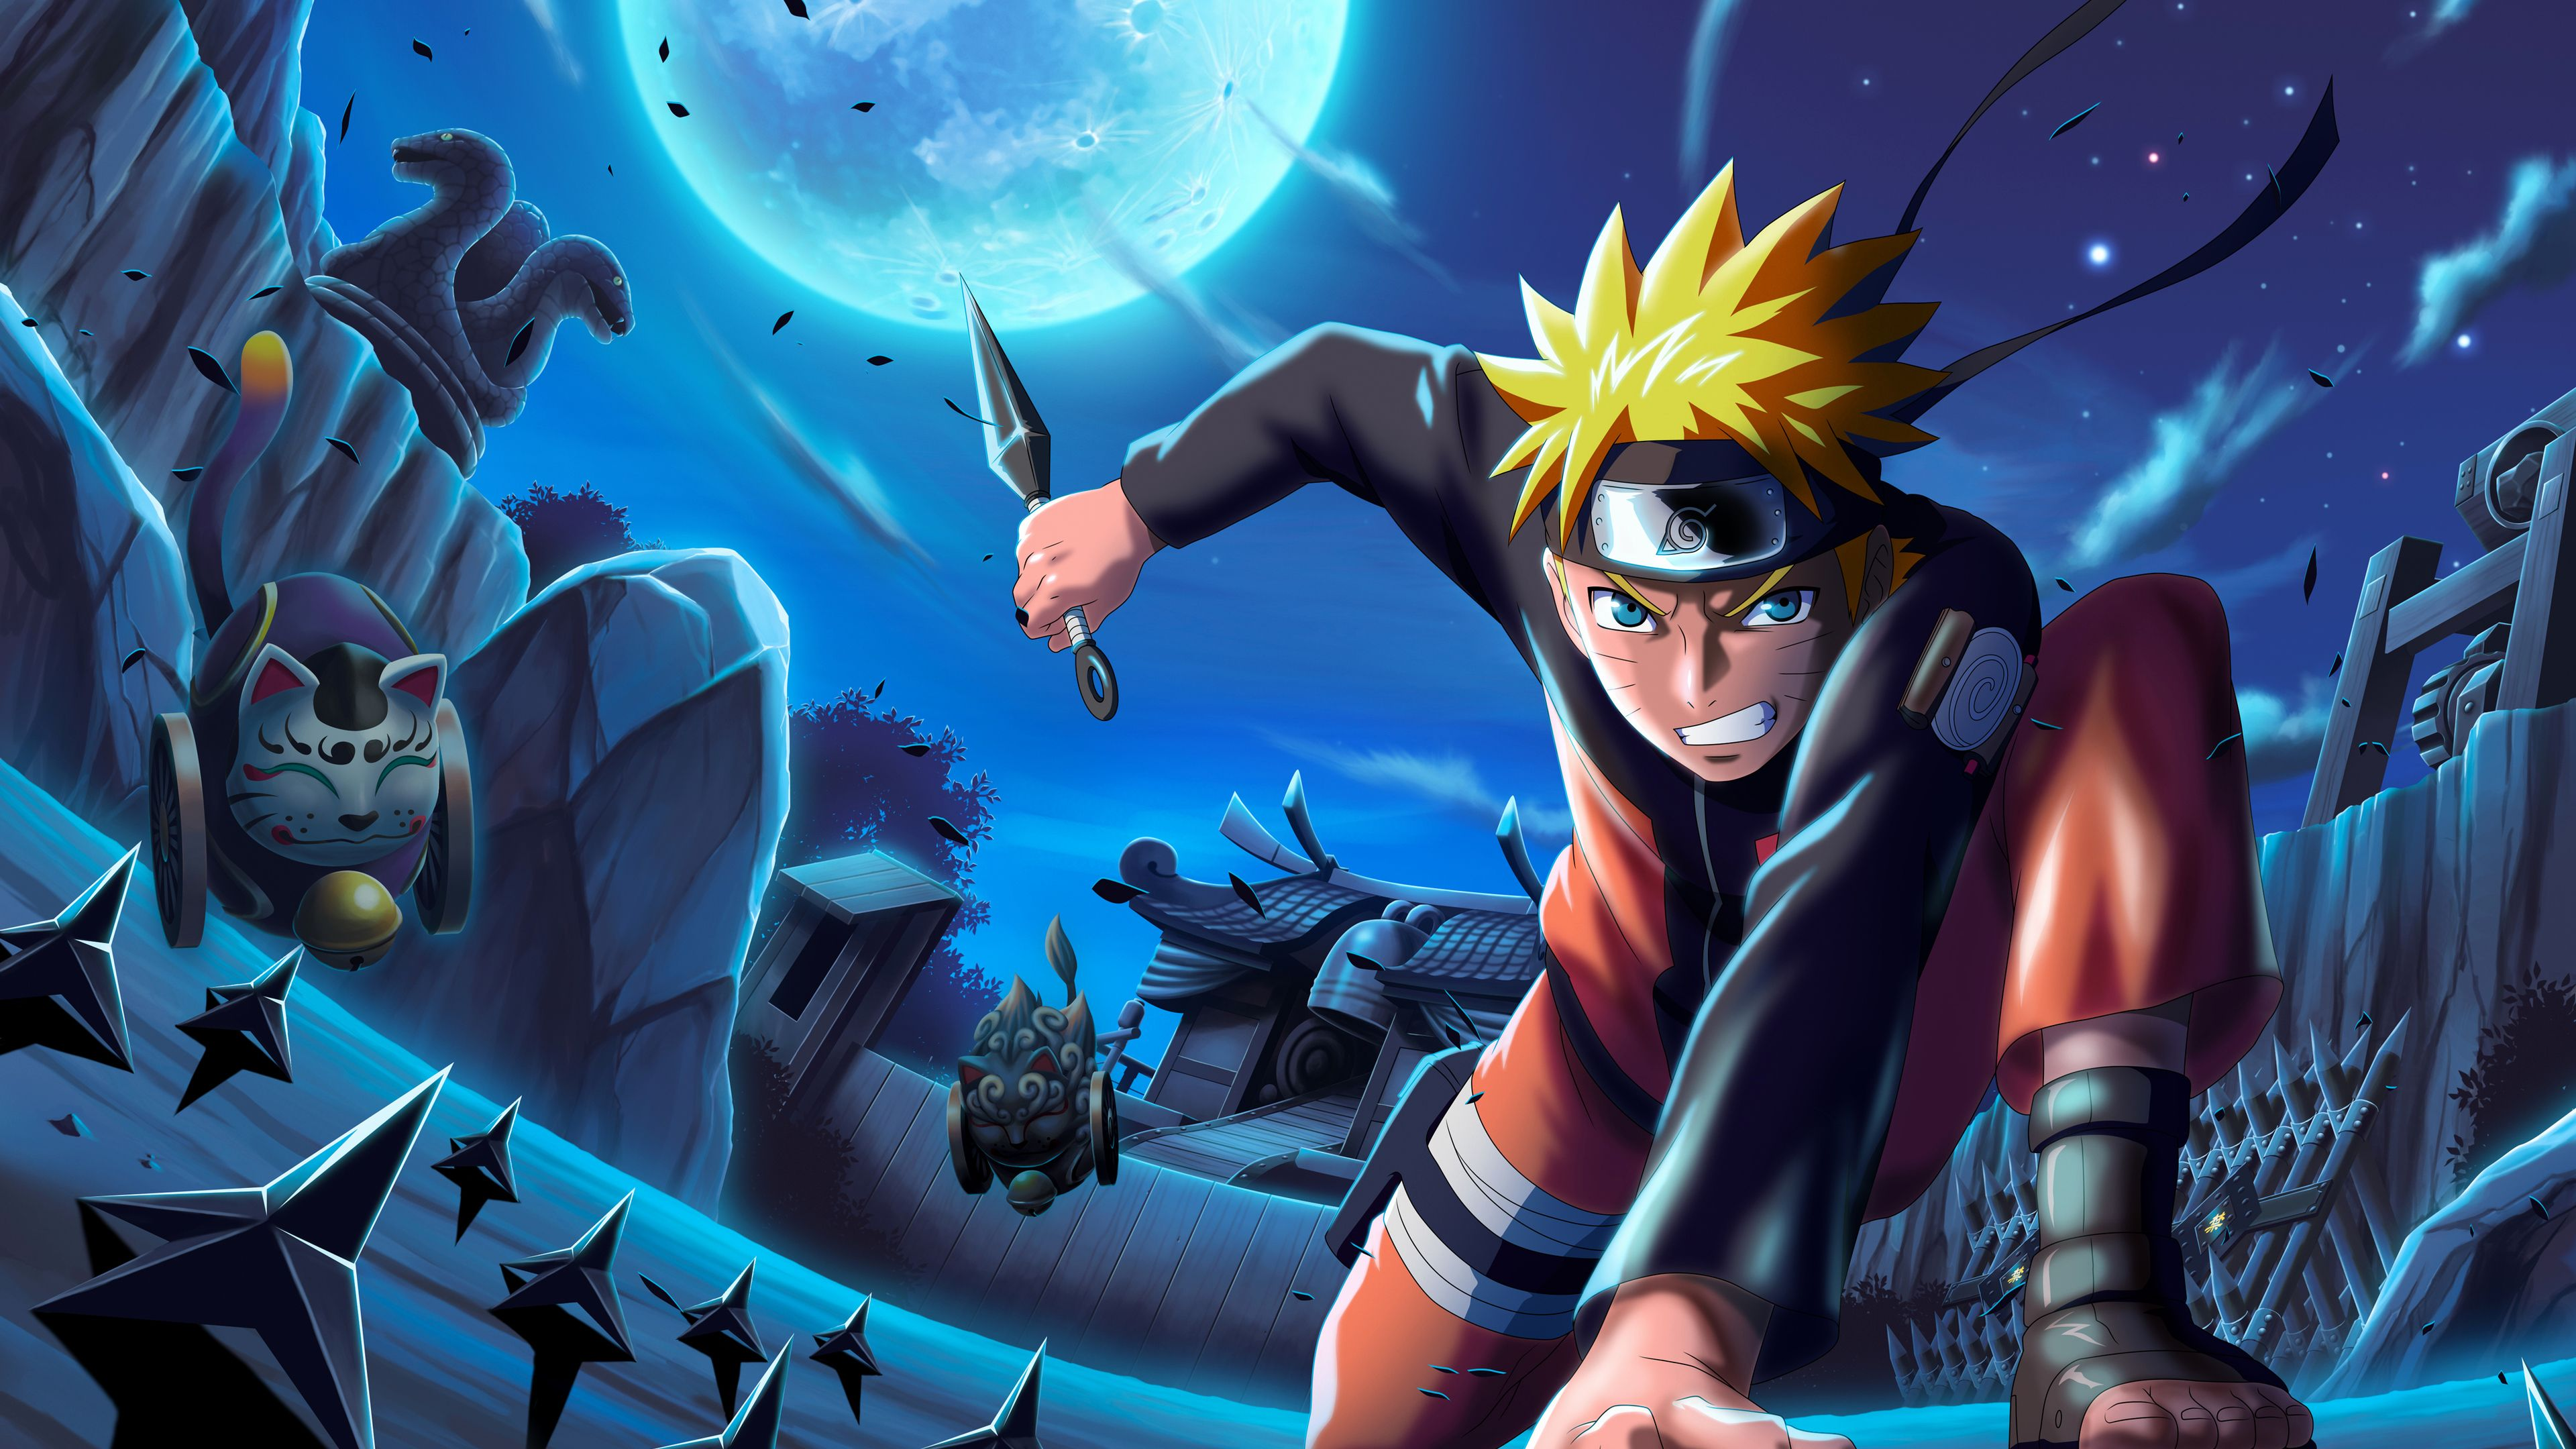 Naruto X Boruto Ninja Voltage Naruto X Boruto Ninja Voltage Wallpapers Naruto Wallpapers Hd Wall Naruto Wallpaper Wallpaper Naruto 3d Naruto Wallpaper Iphone